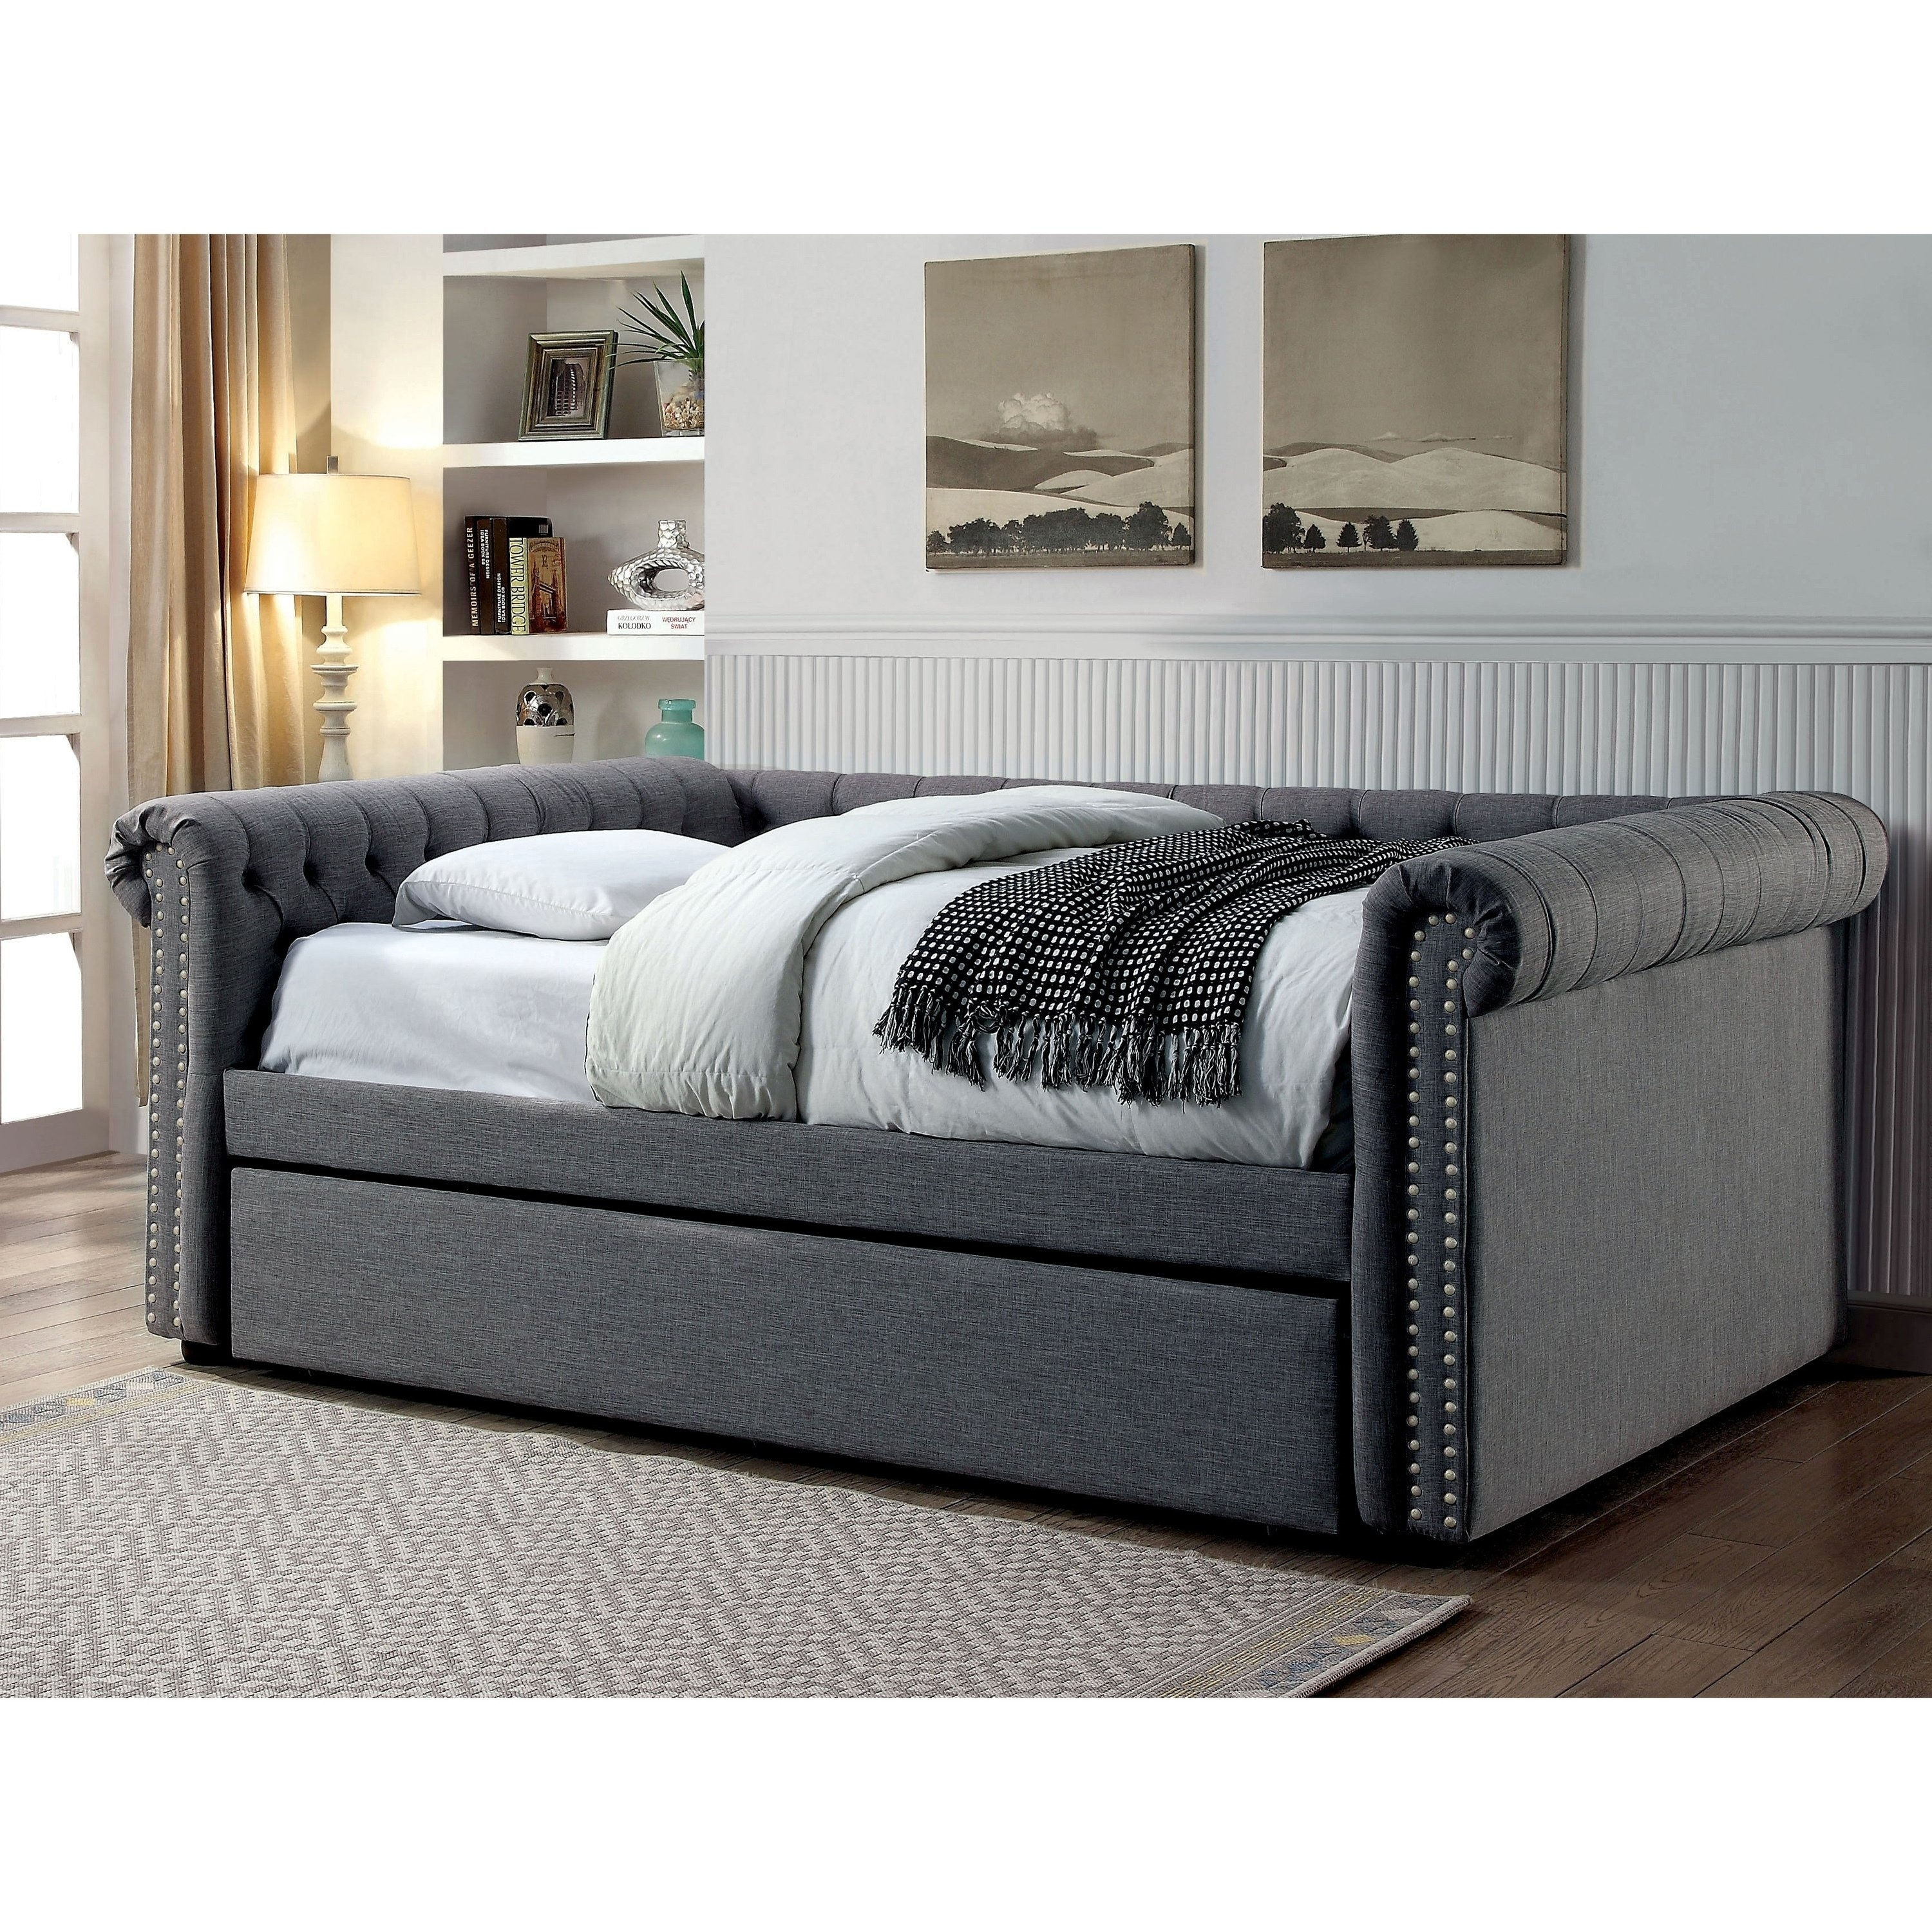 Nellie Contemporary 2 Piece Daybed With Twin Trundle Set By Foa